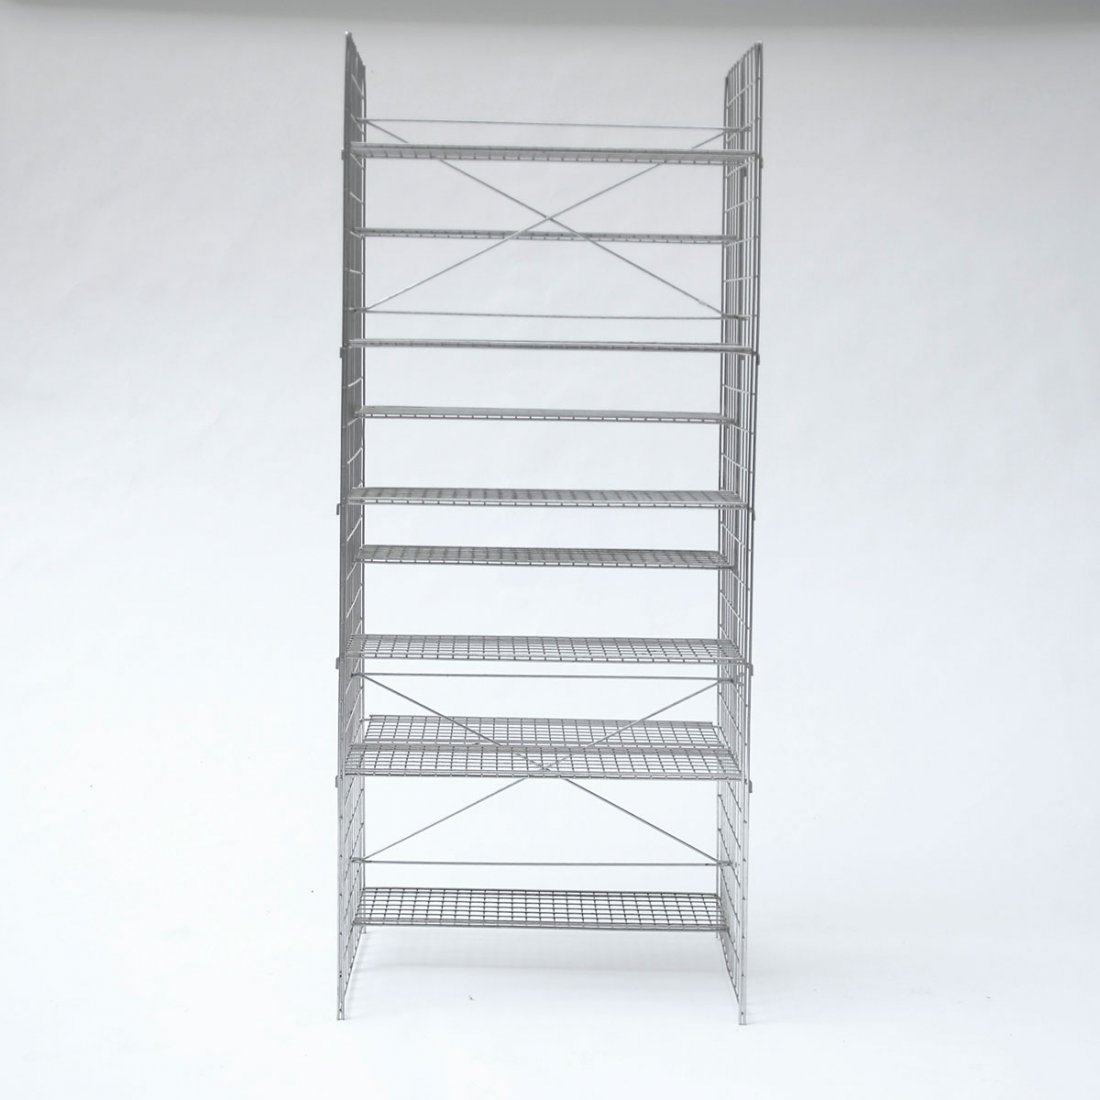 Otl Aicher. Prototype shelf, c1975. H. 188 x 85 x 50.5  - 2